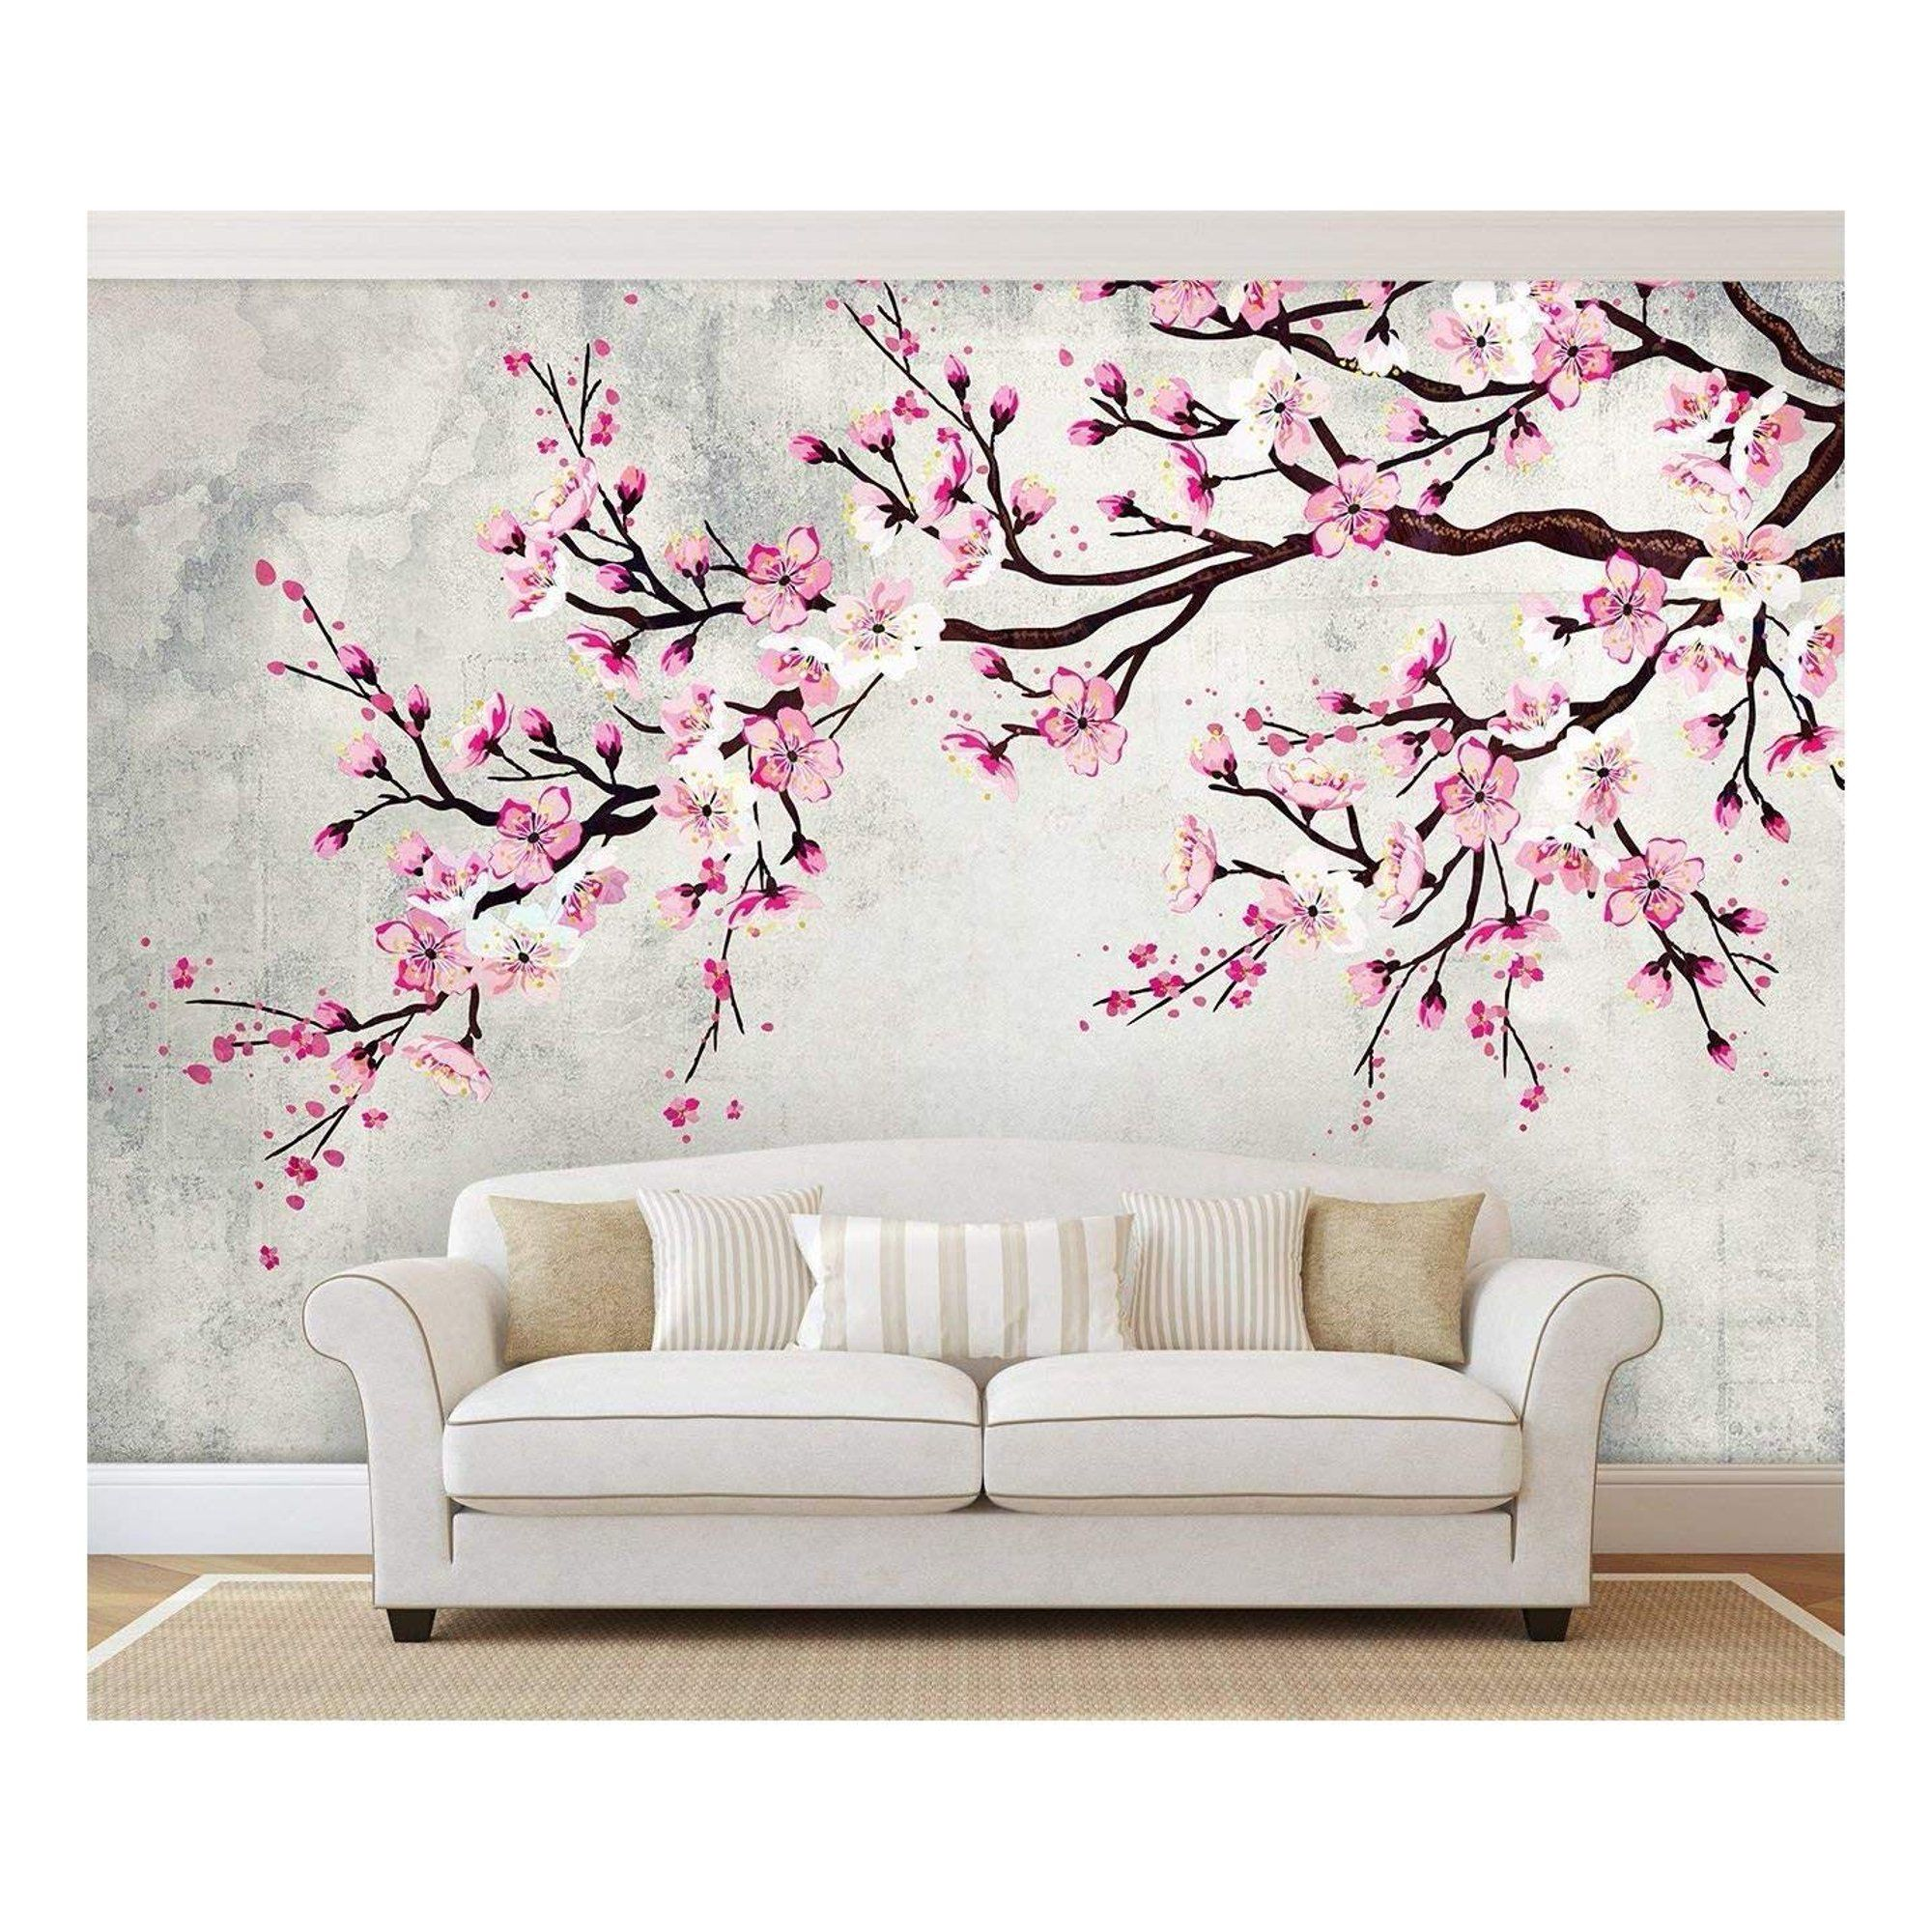 Wall26 Large Wall Mural Watercolor Style Ink Painting Pink Cherry Blossom On Vintage Wall Background Self Adhesive Vinyl Wallpaper Removable Modern Wall Dec Large Wall Murals Wall Murals Painted Wall Murals